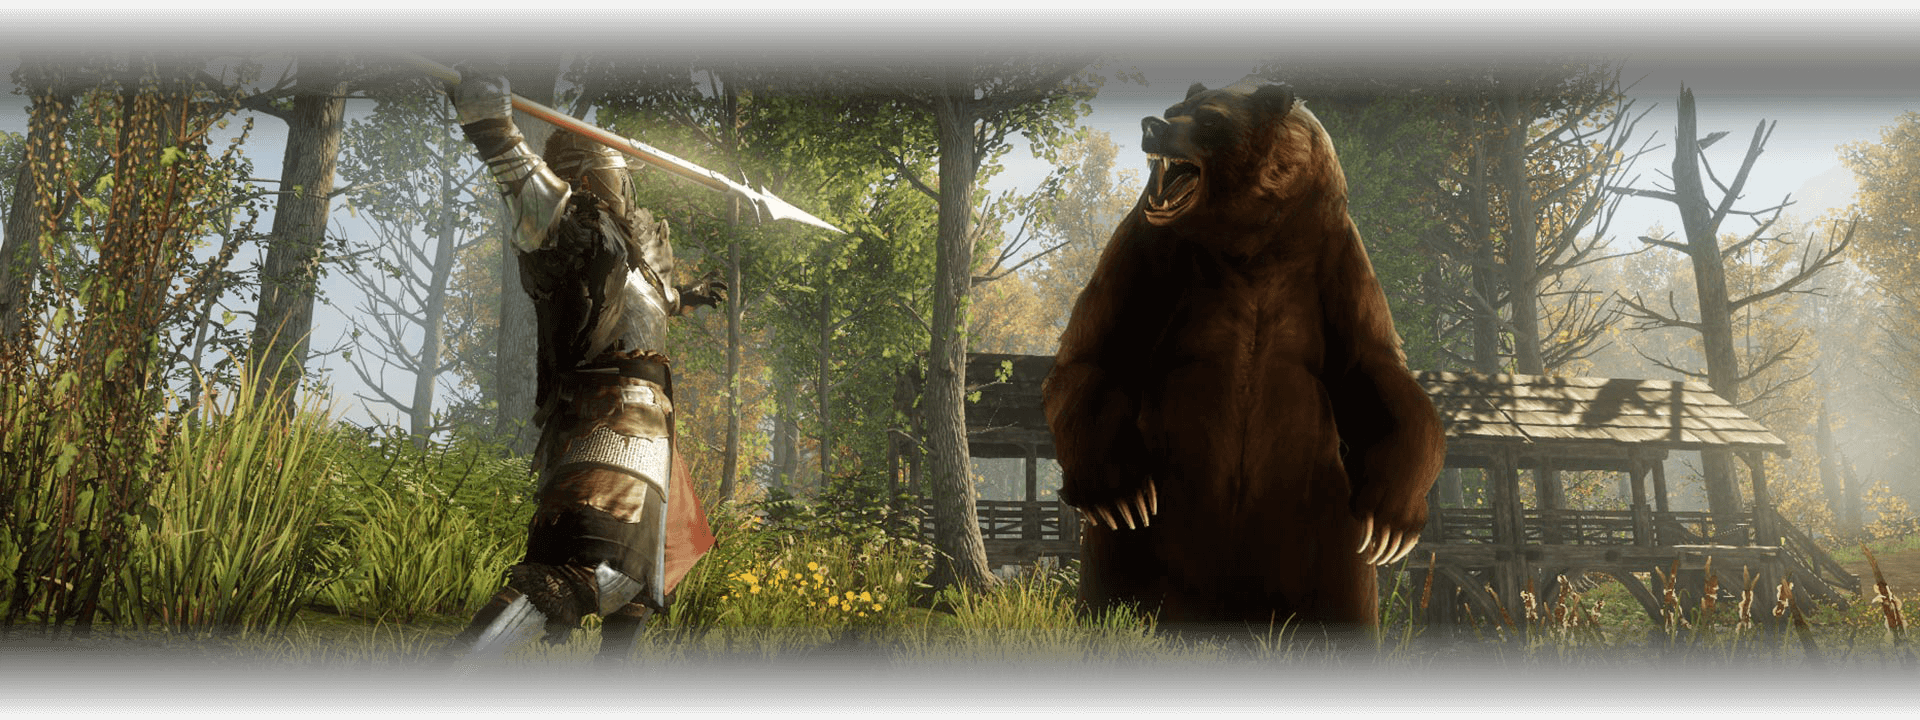 A speared explorer attacks a bear in the woods outside of a fort